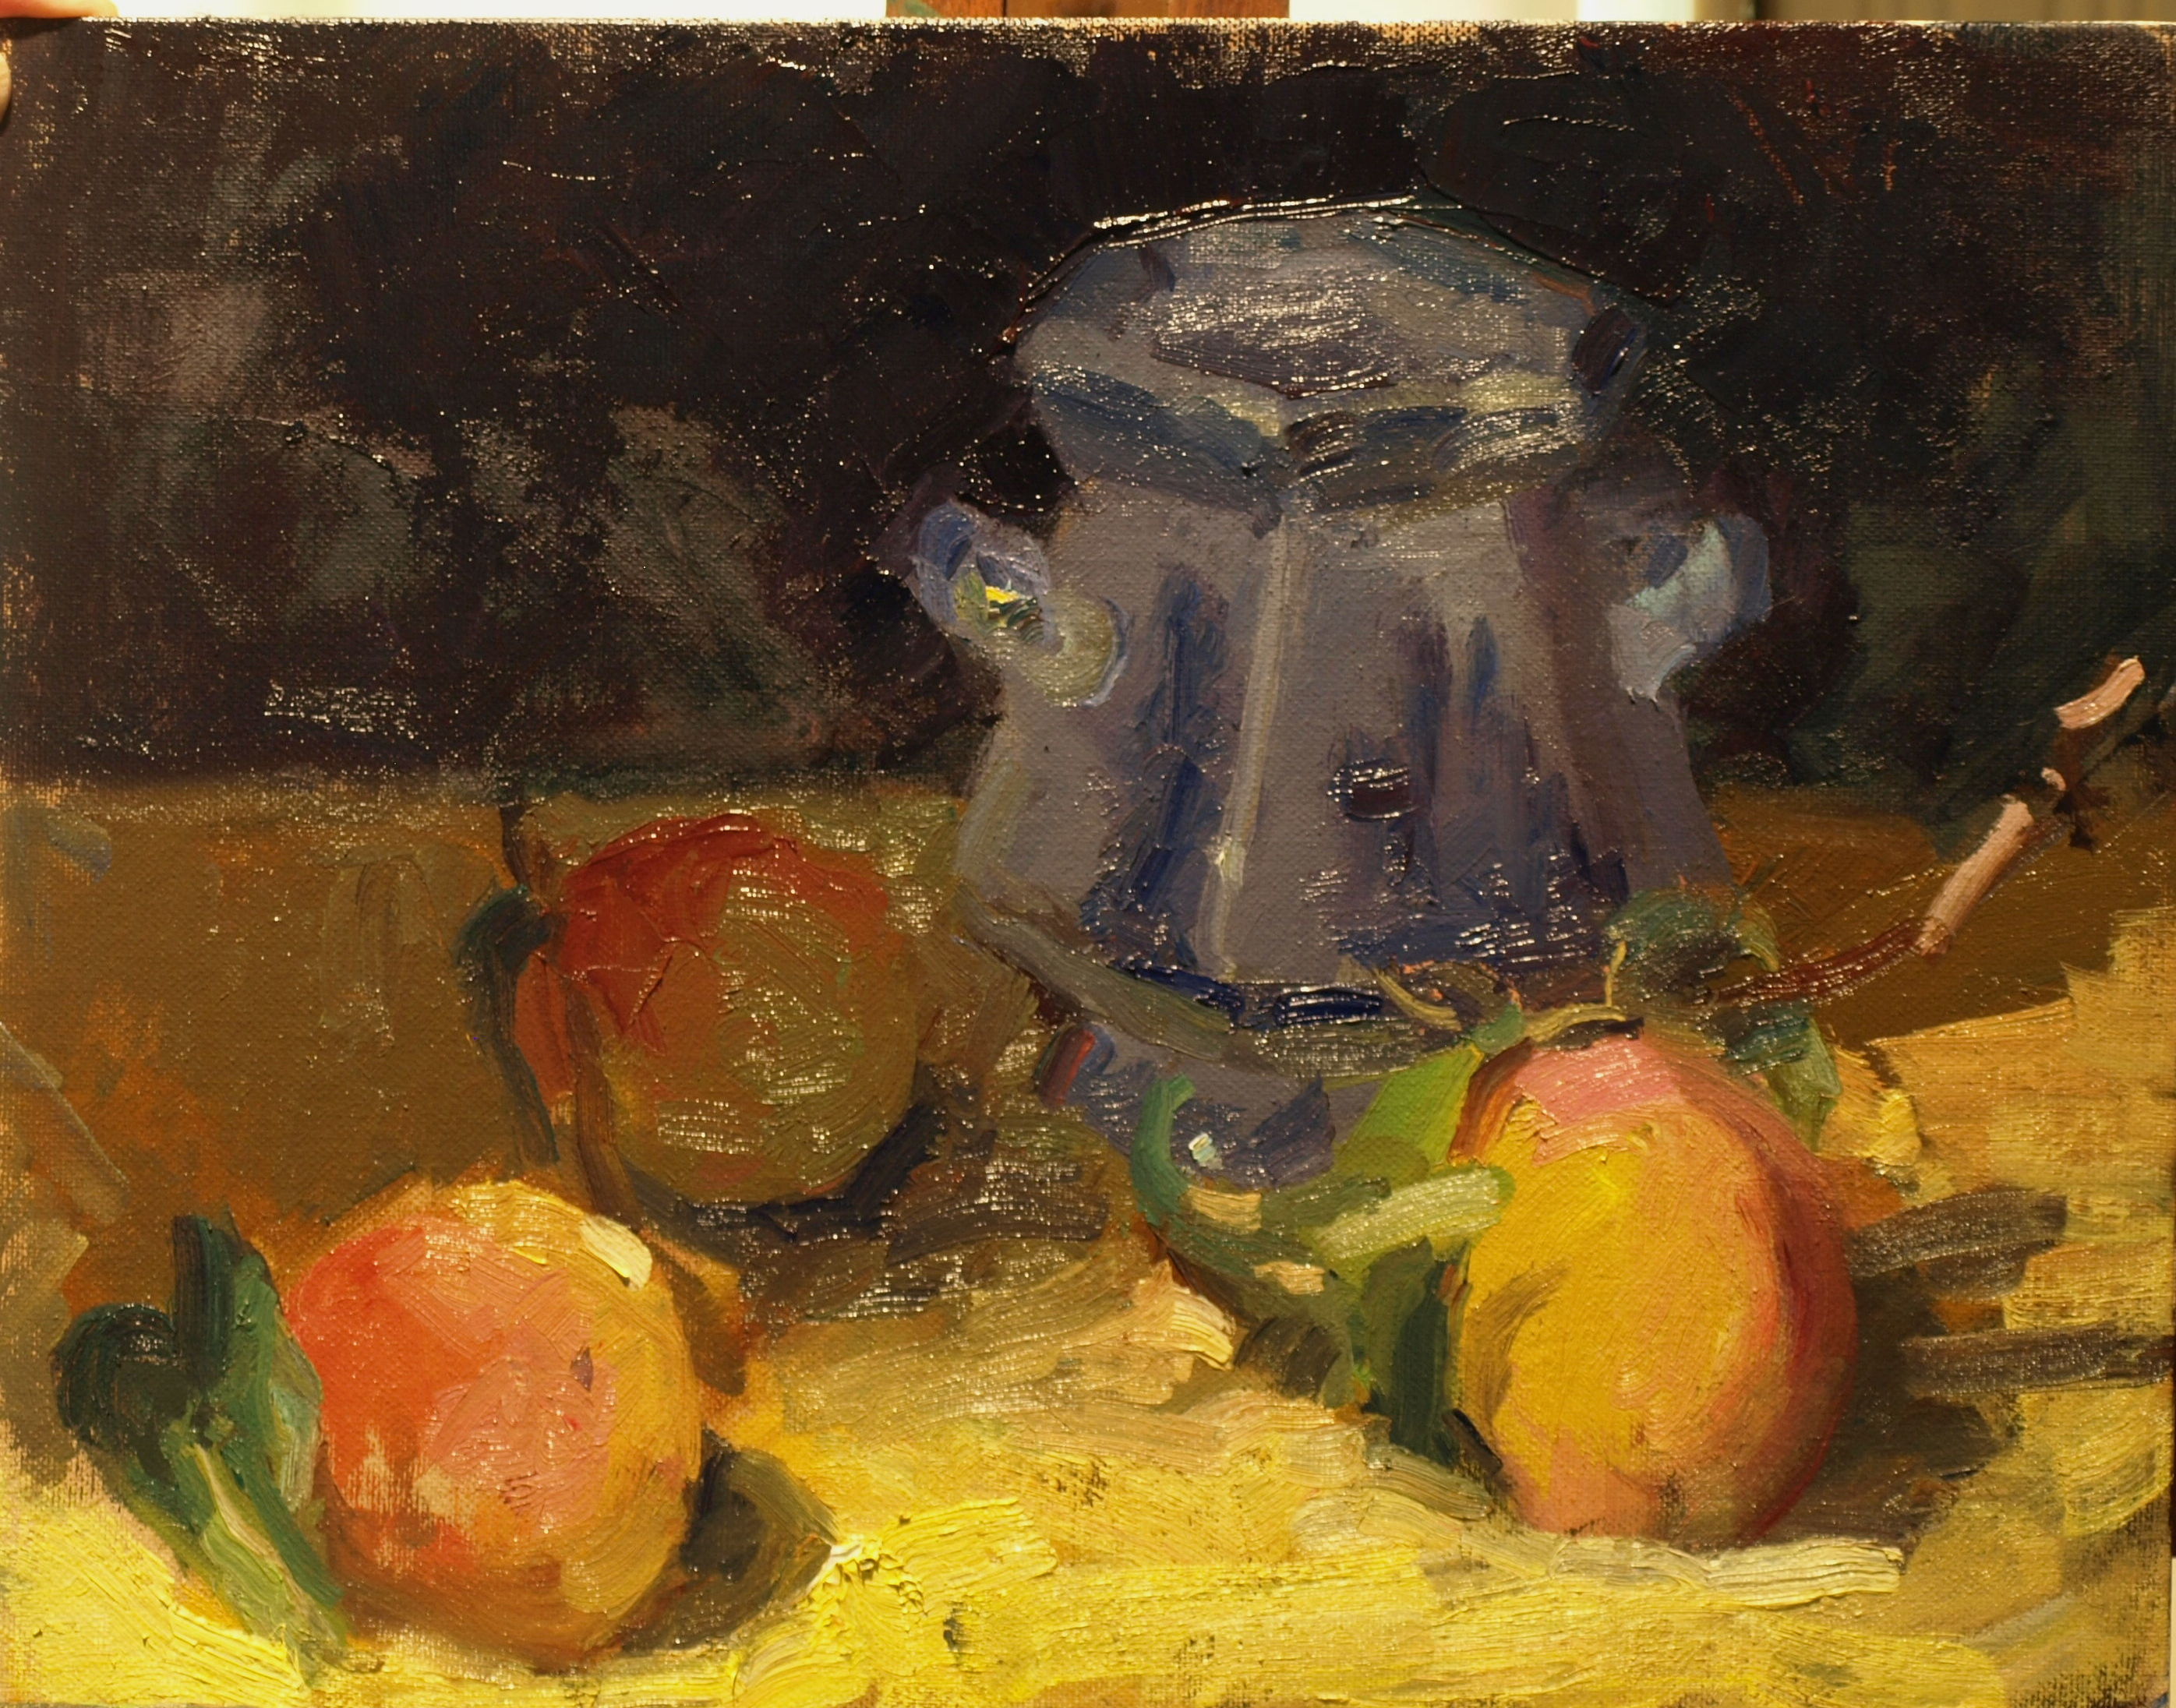 Peaches and Sugar Bowl, Oil on Panel, 11 x 14 Inches, by Susan Grisell, $300